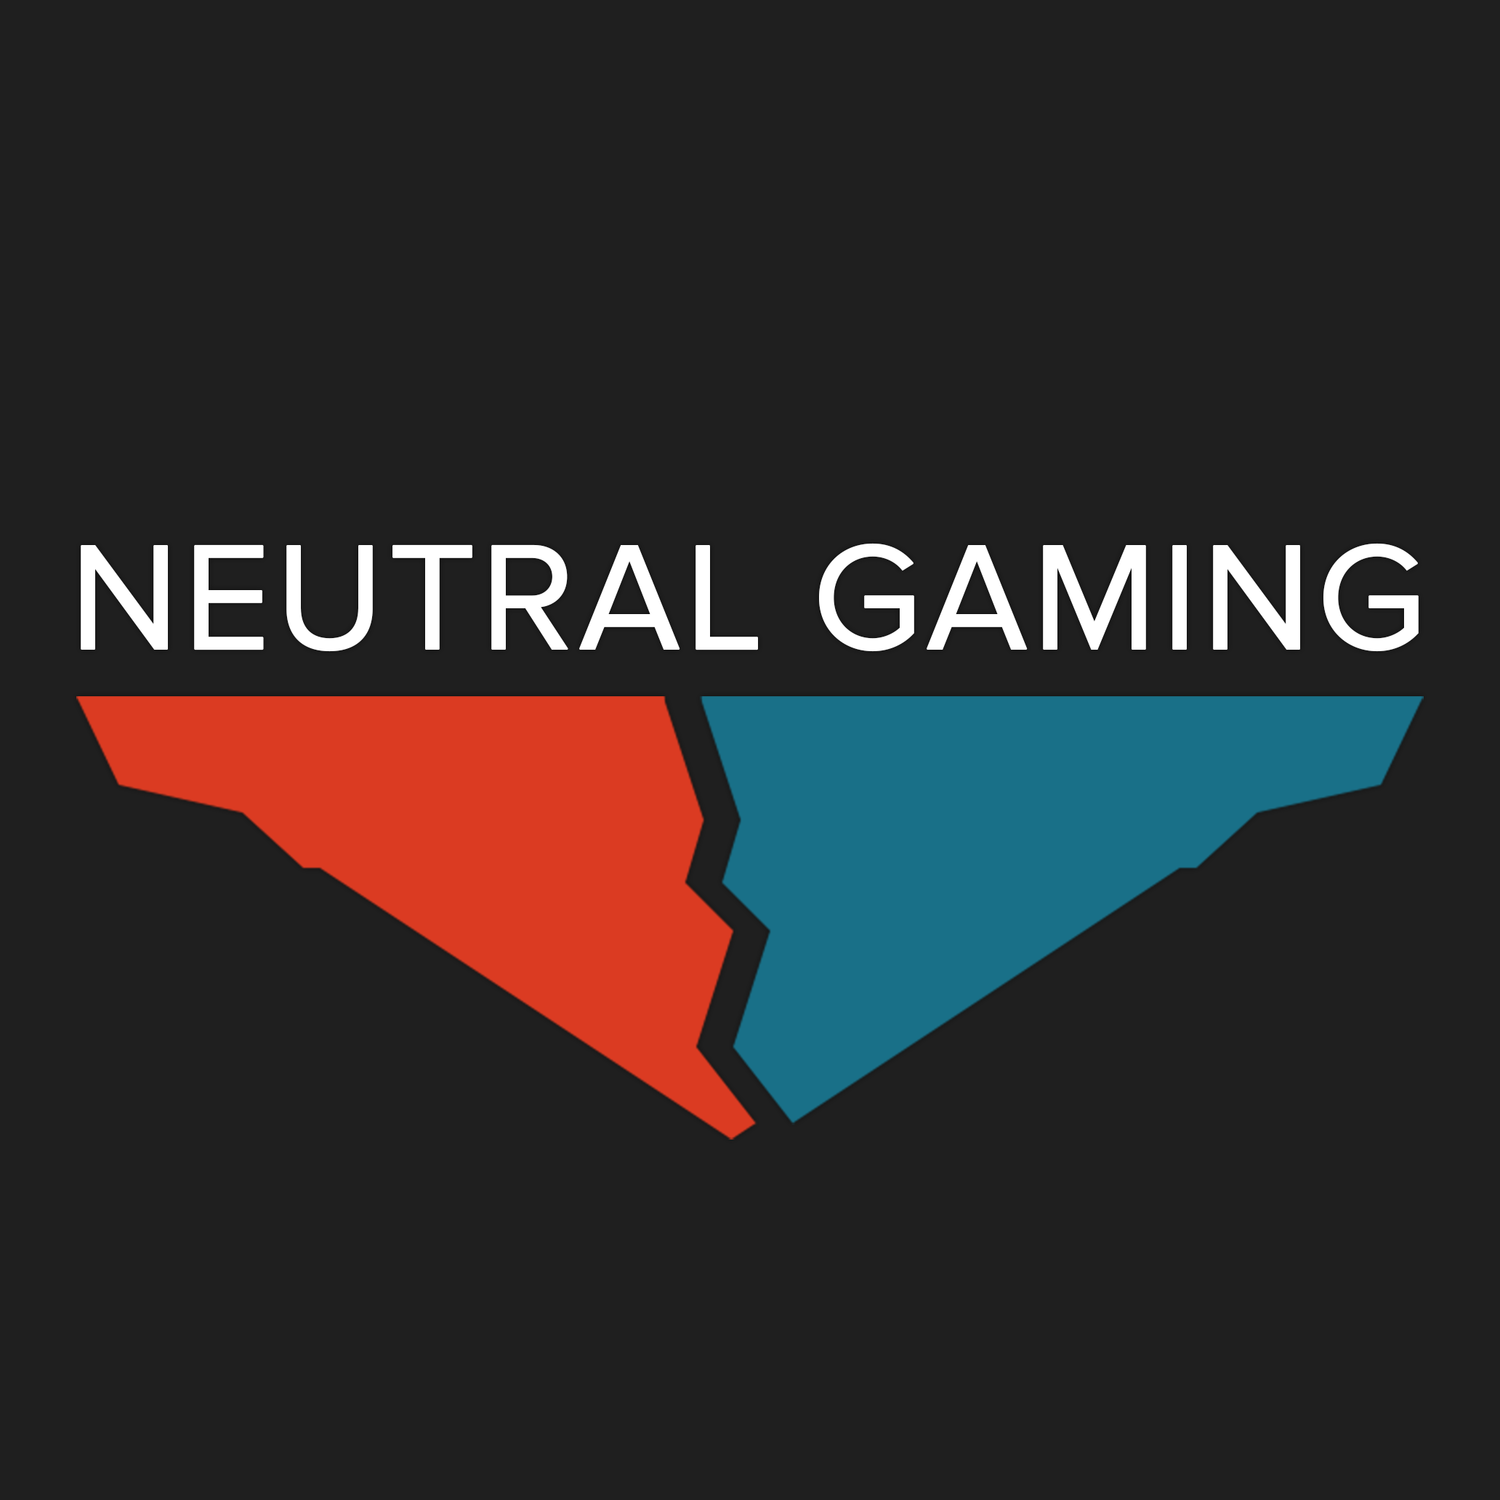 Neutral Gaming